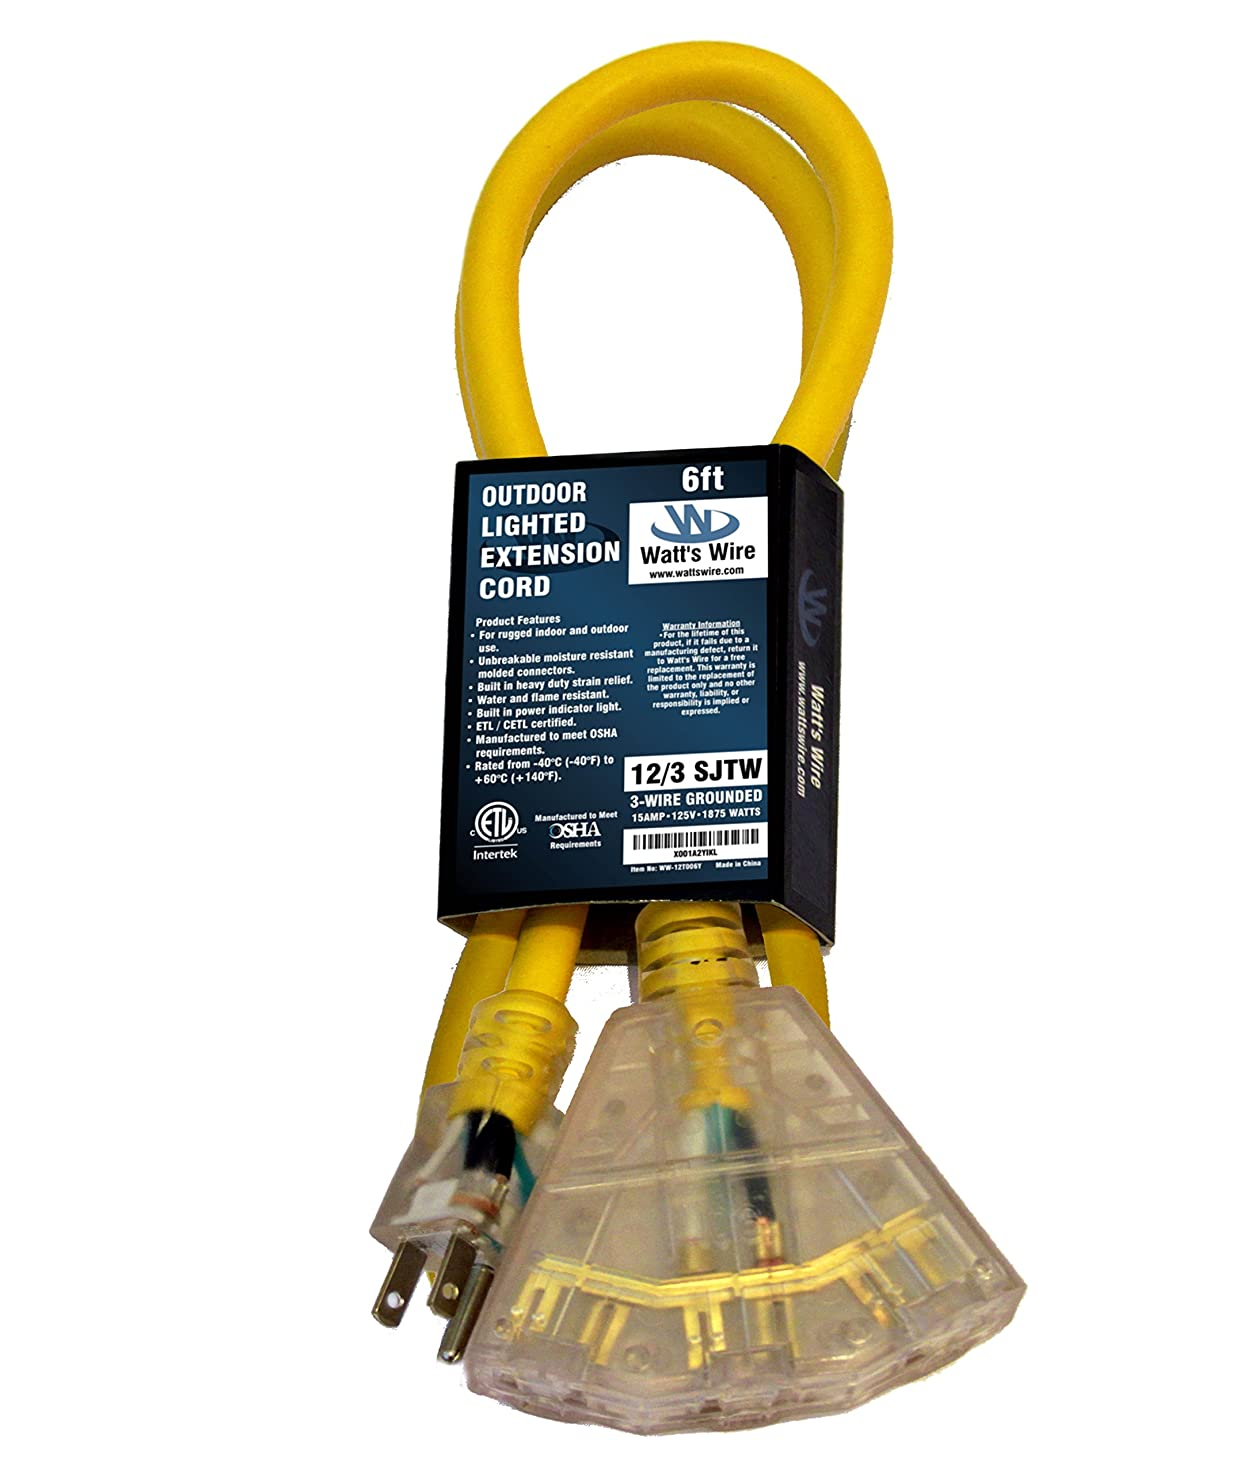 6-ft 12/3 Heavy Duty 3-Outlet Lighted SJTW Indoor/Outdoor Extension Cord by Watt's Wire - Short Yellow 6' 12-Gauge Grounded 15-Amp Three-Prong Power-Cord (6 foot 12-Awg) vgwmvcruvnidd0